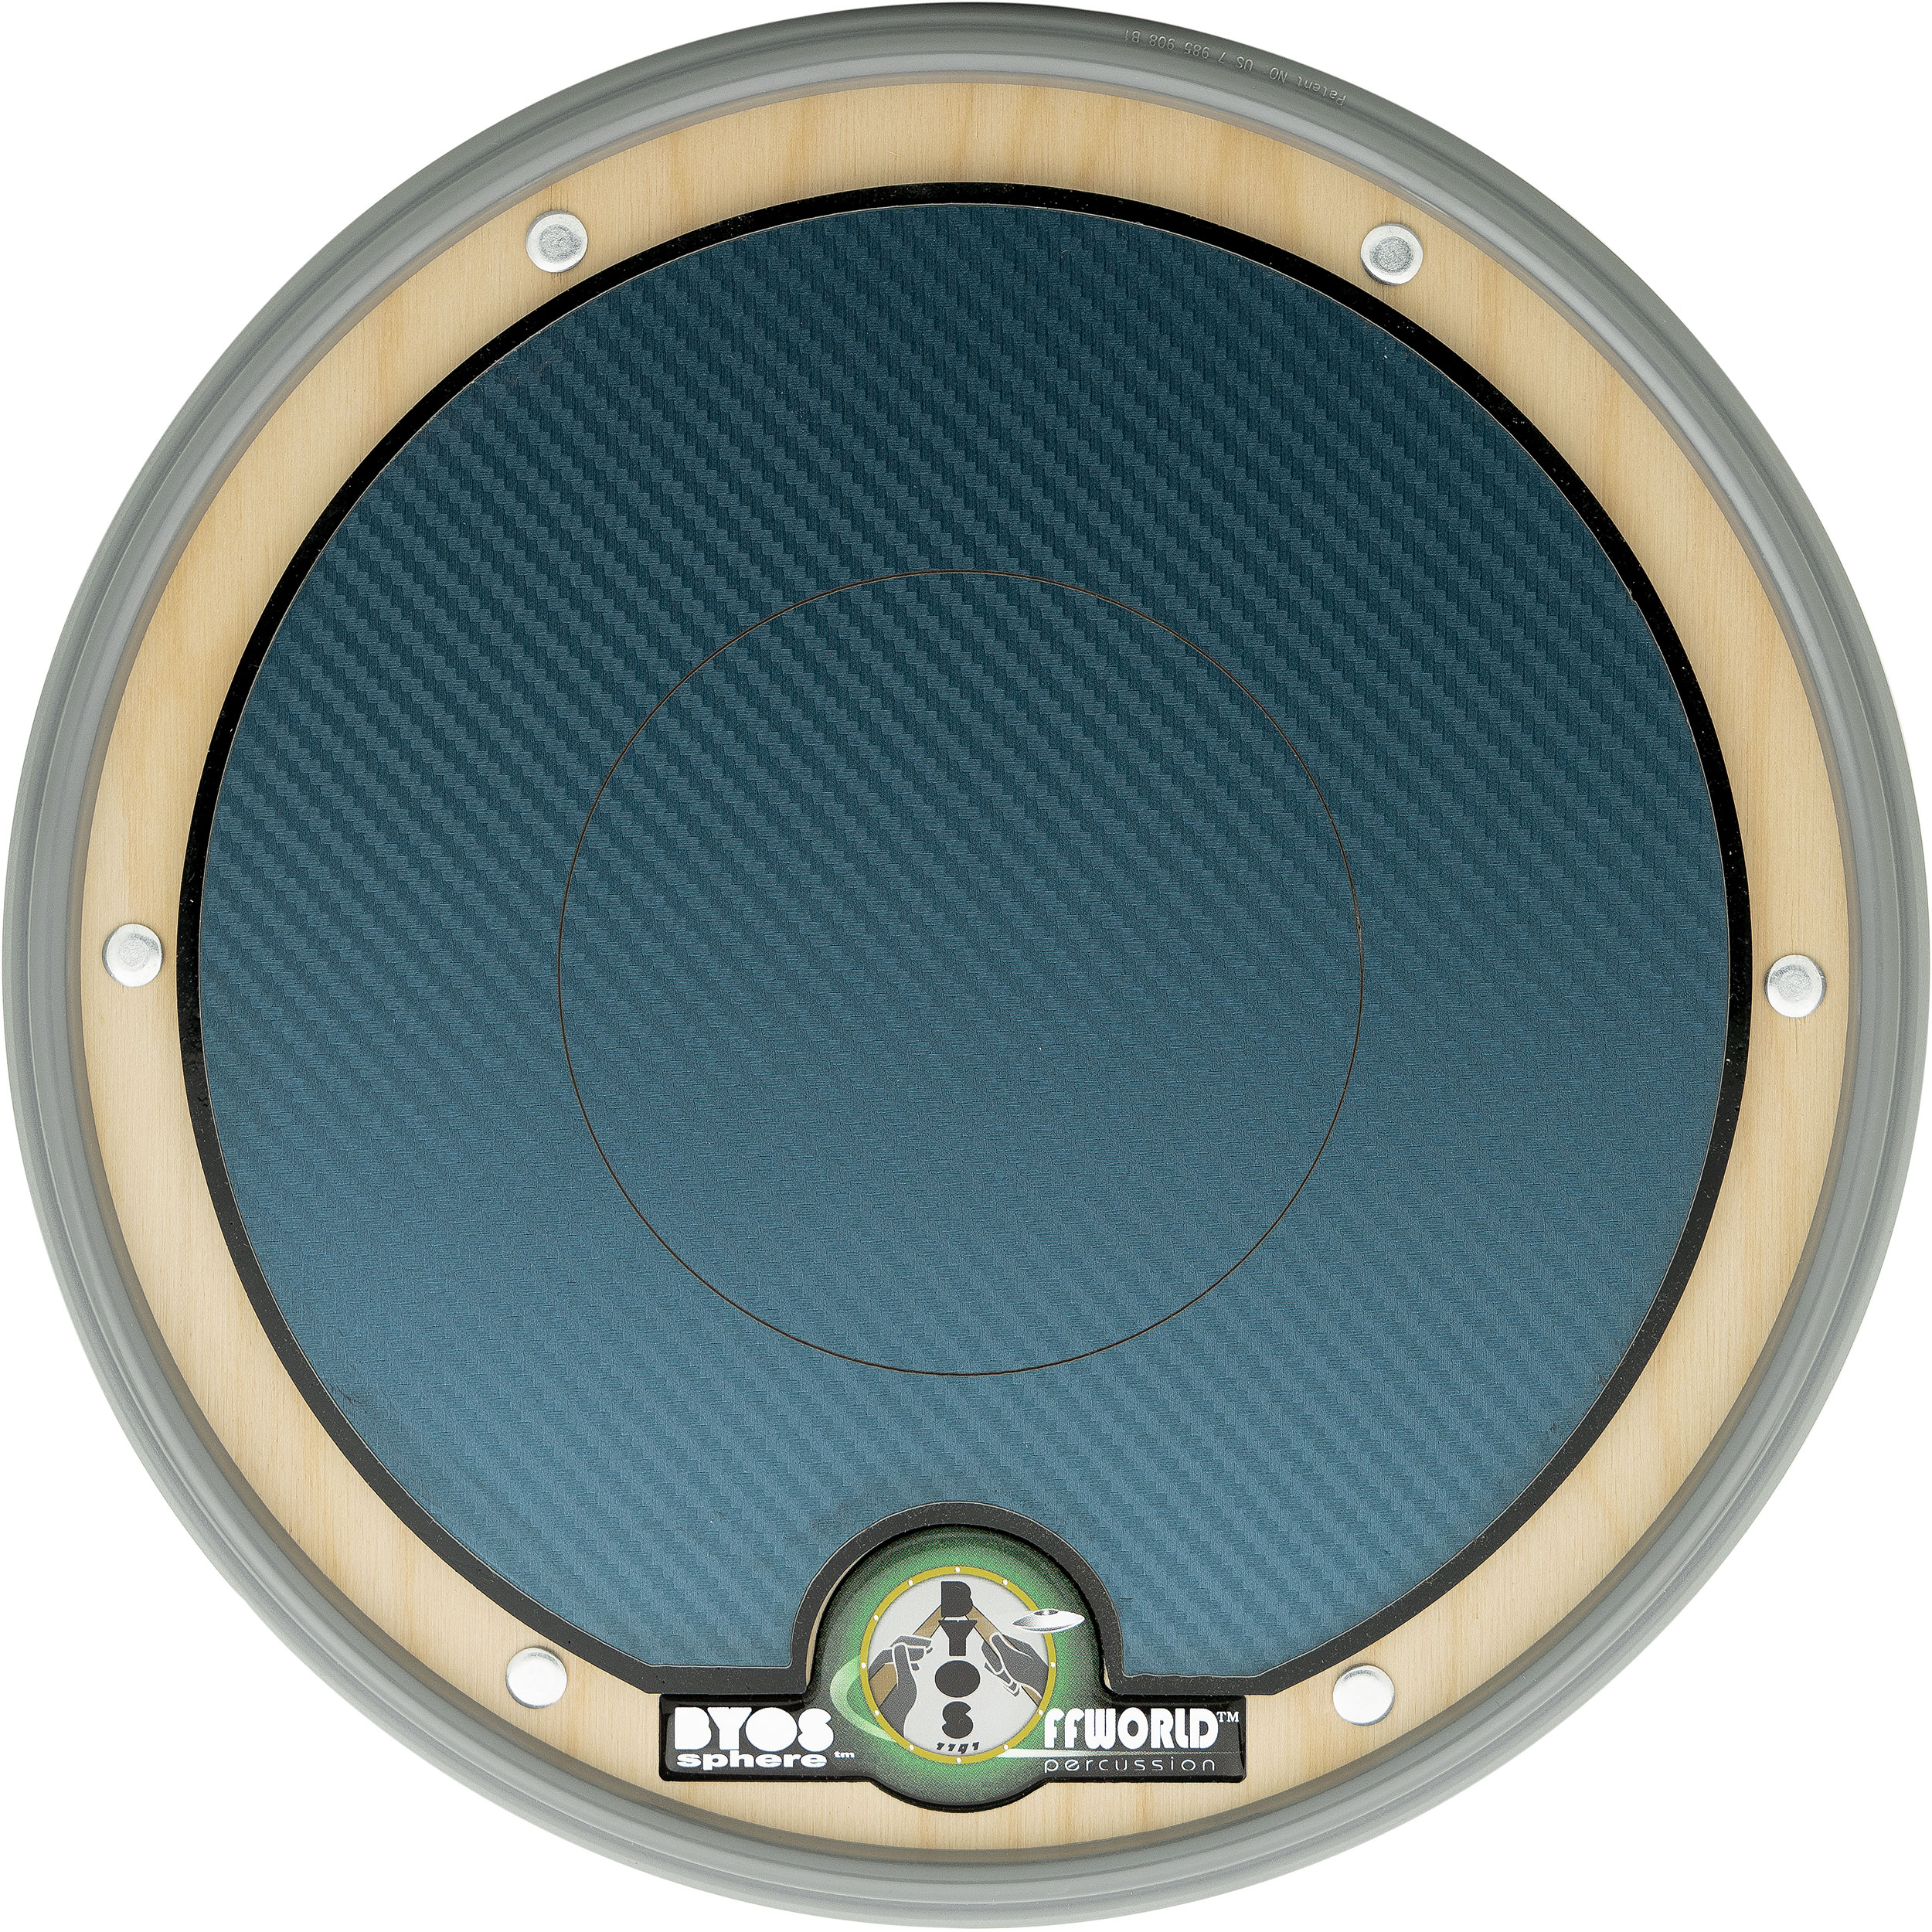 Offworld Percussion BYOSphere Practice Pad with Blue Chameleon Laminate